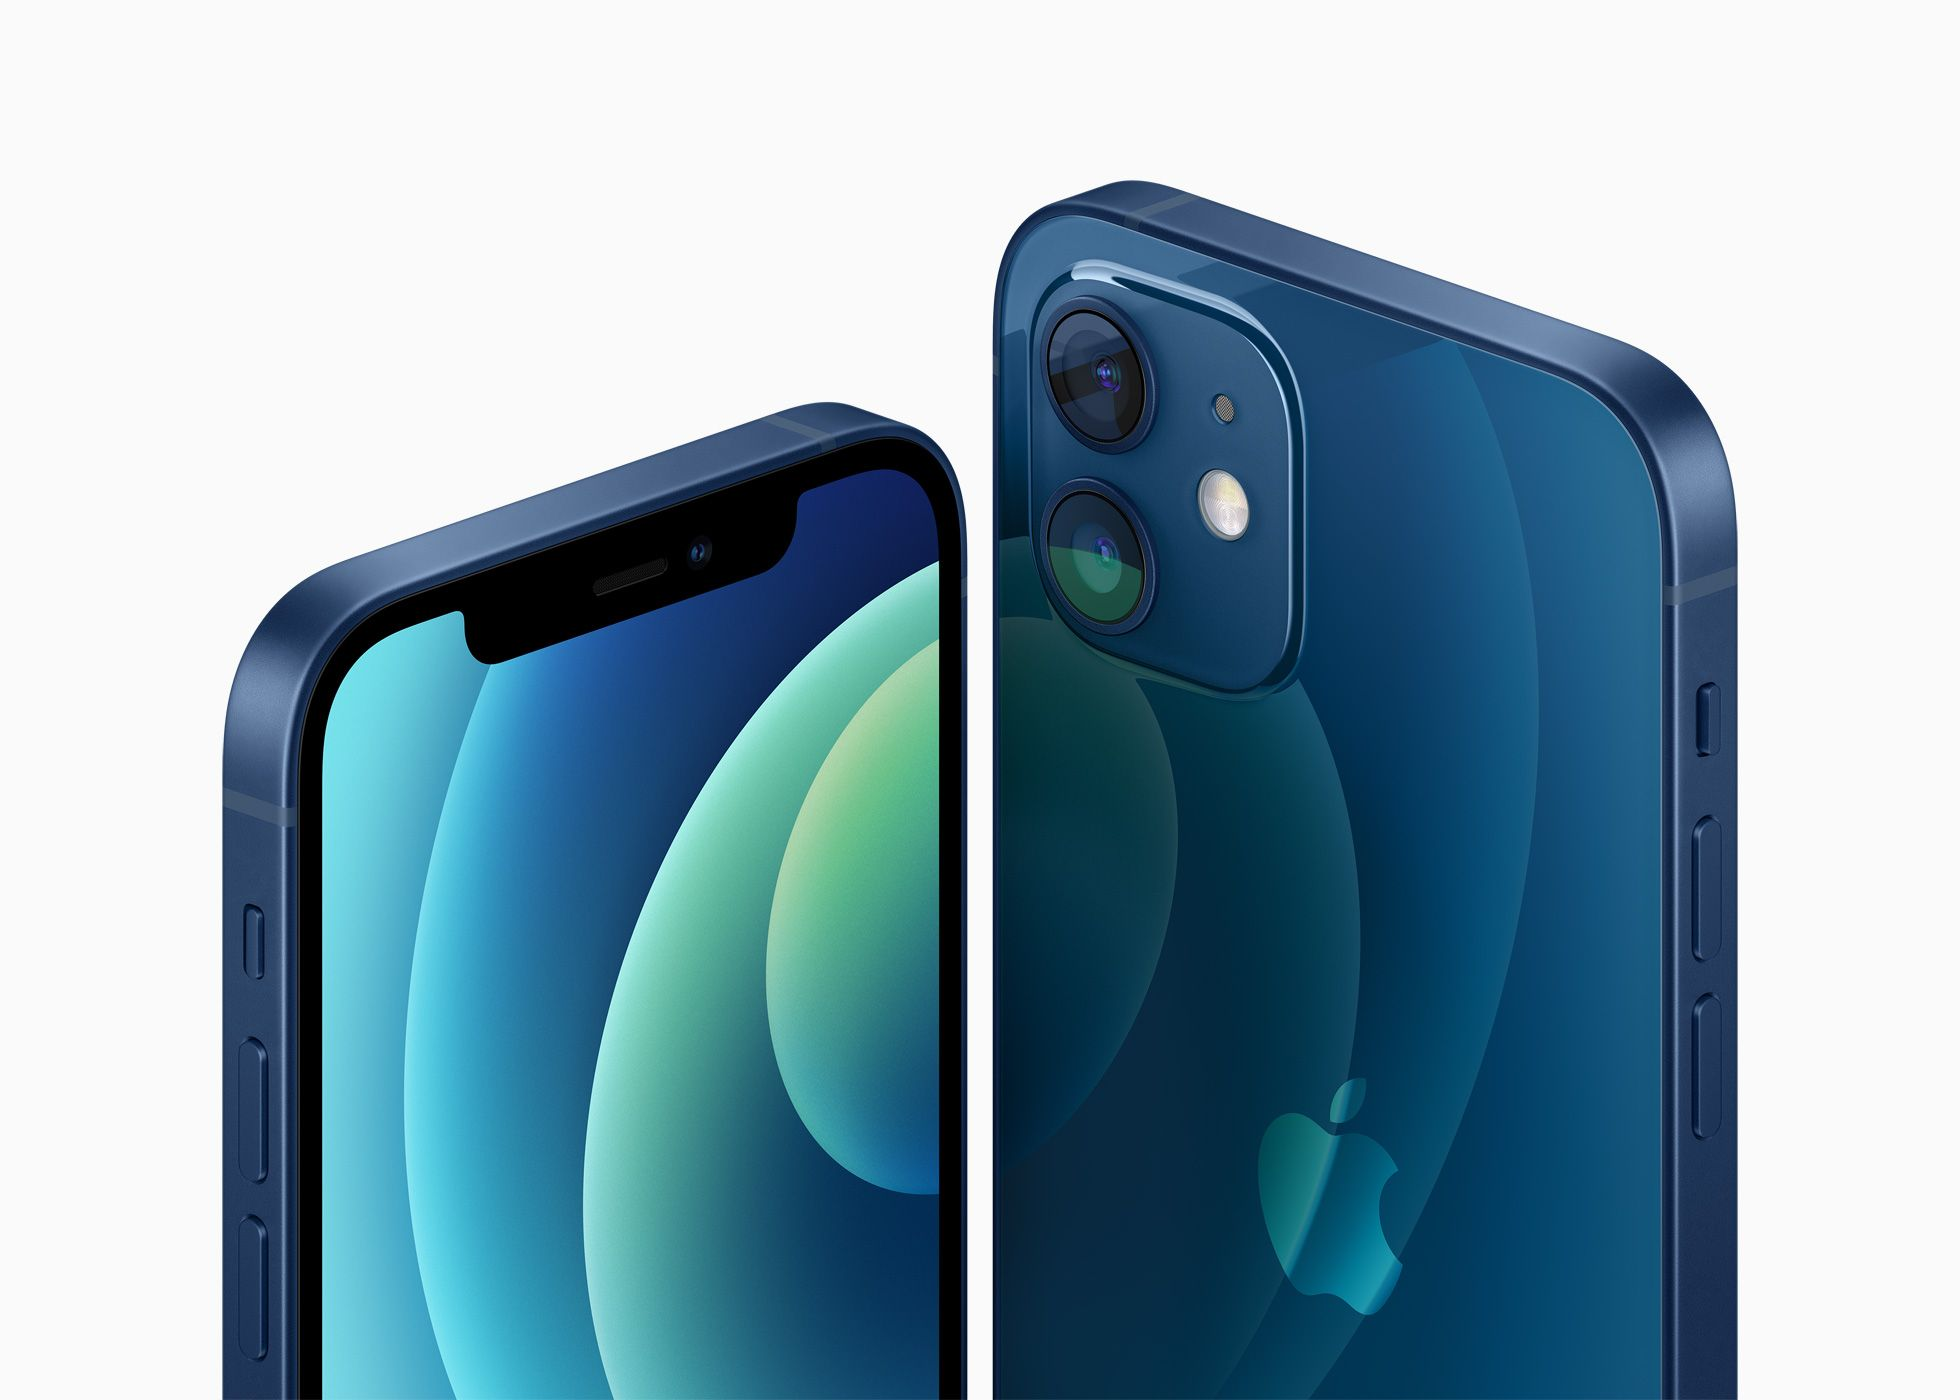 Buy apple phone: Which things will be in our mind